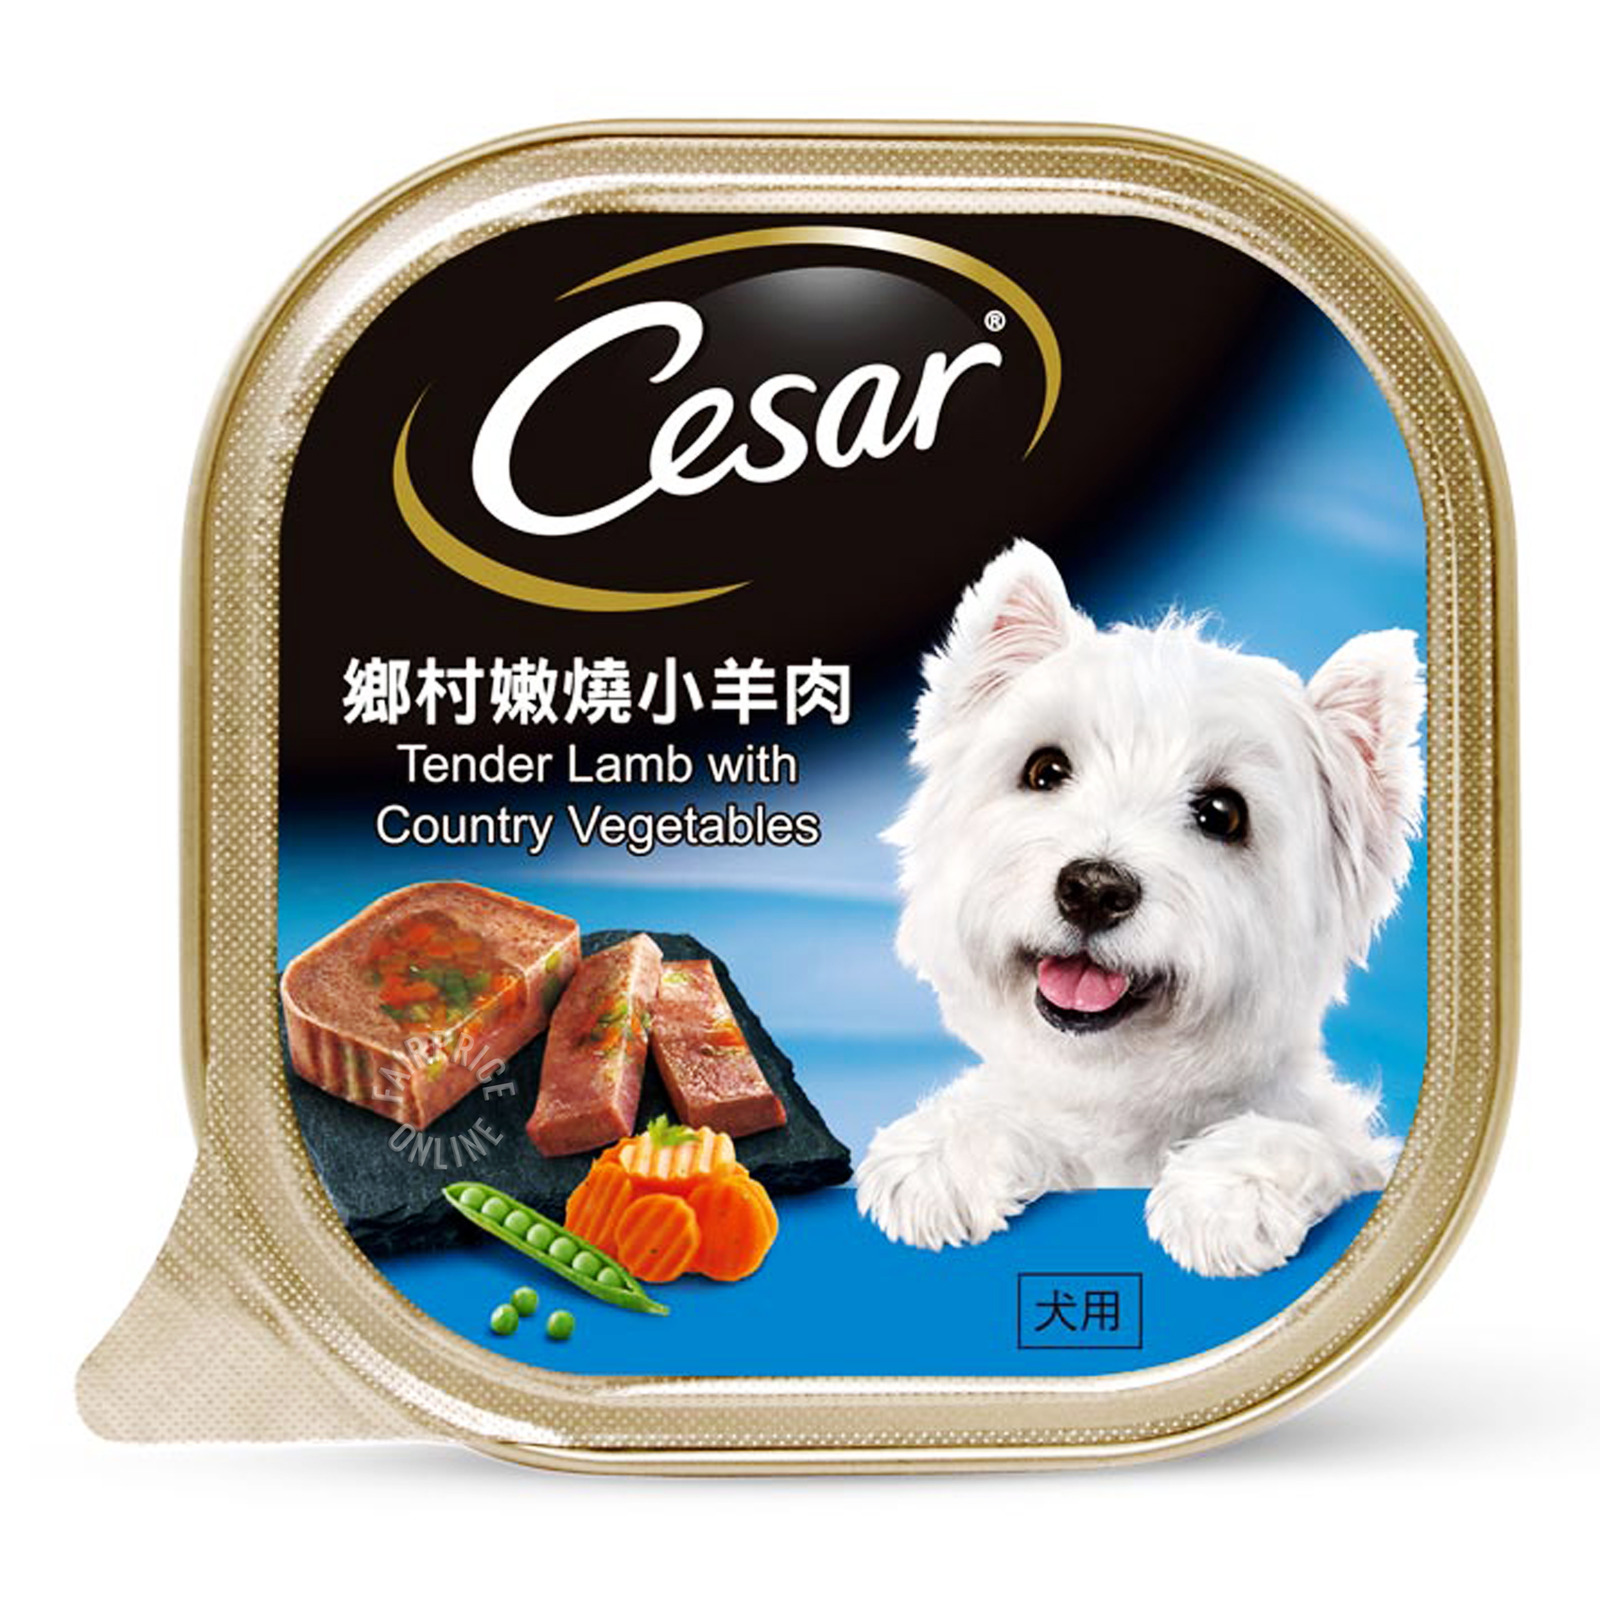 Cesar Dog Wet Food - Tender Lamb with Country Vegetables